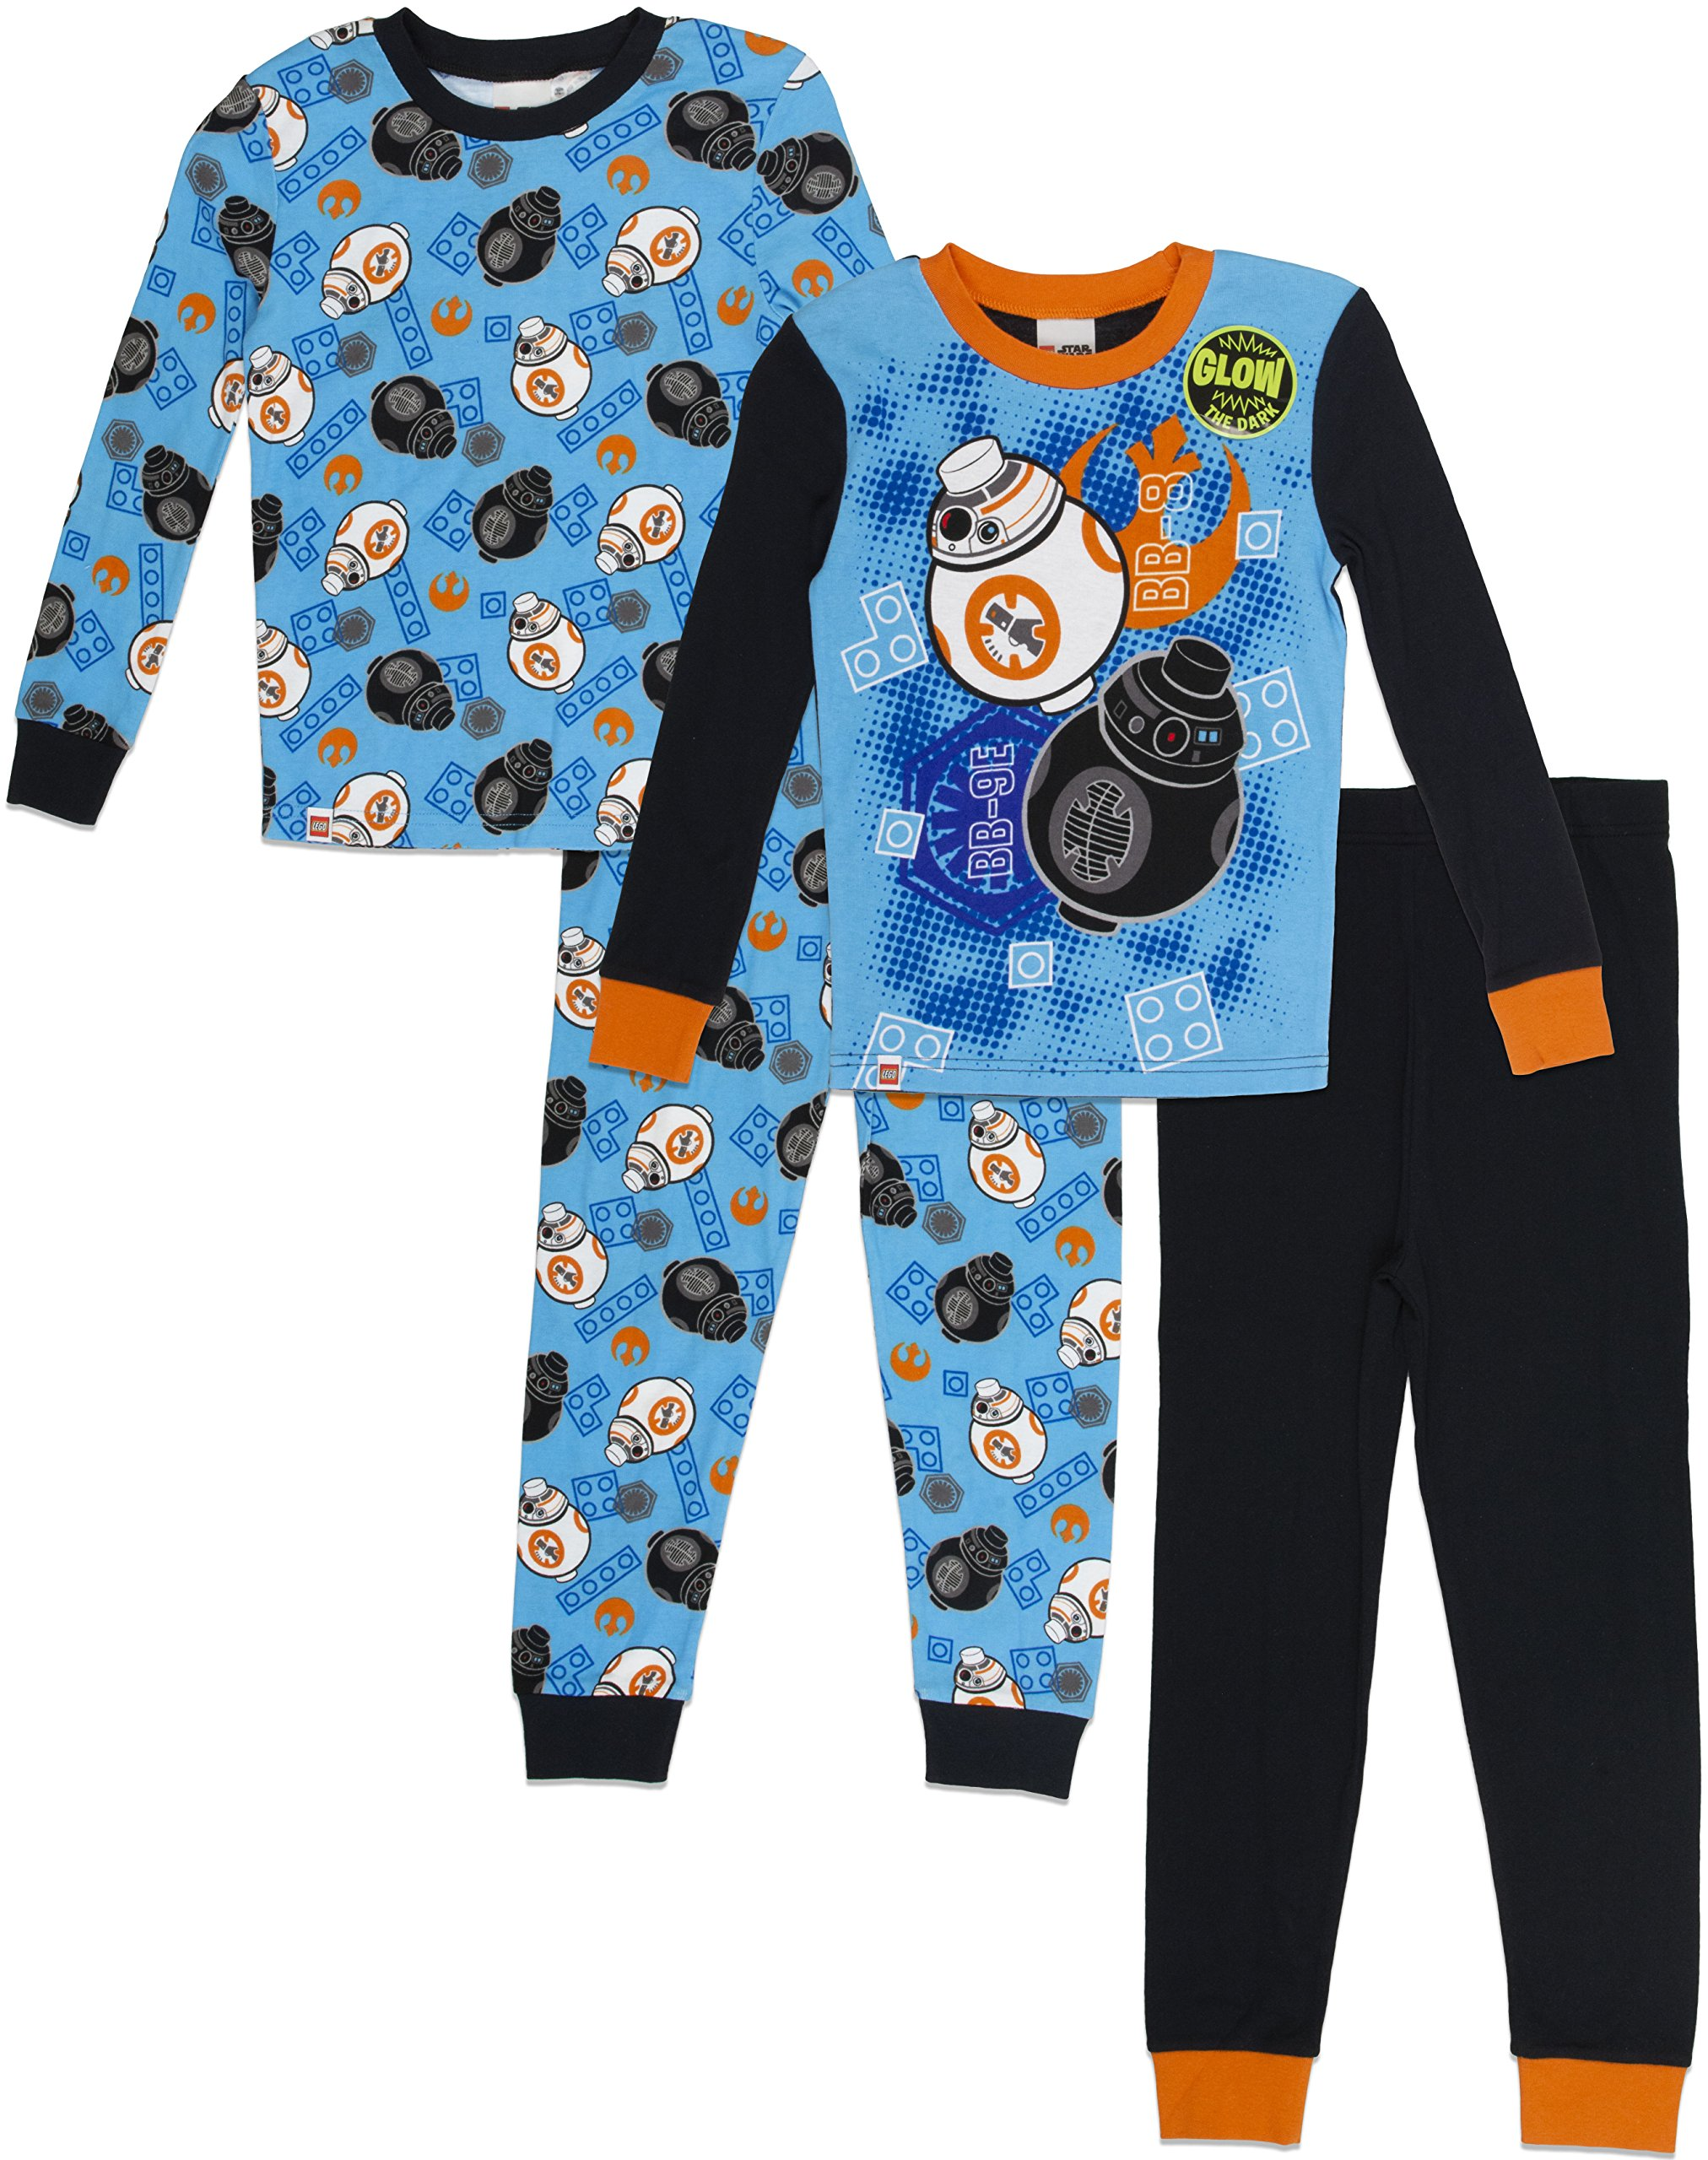 Lego Star Wars Boys 4pc Pajama Pant Set Options